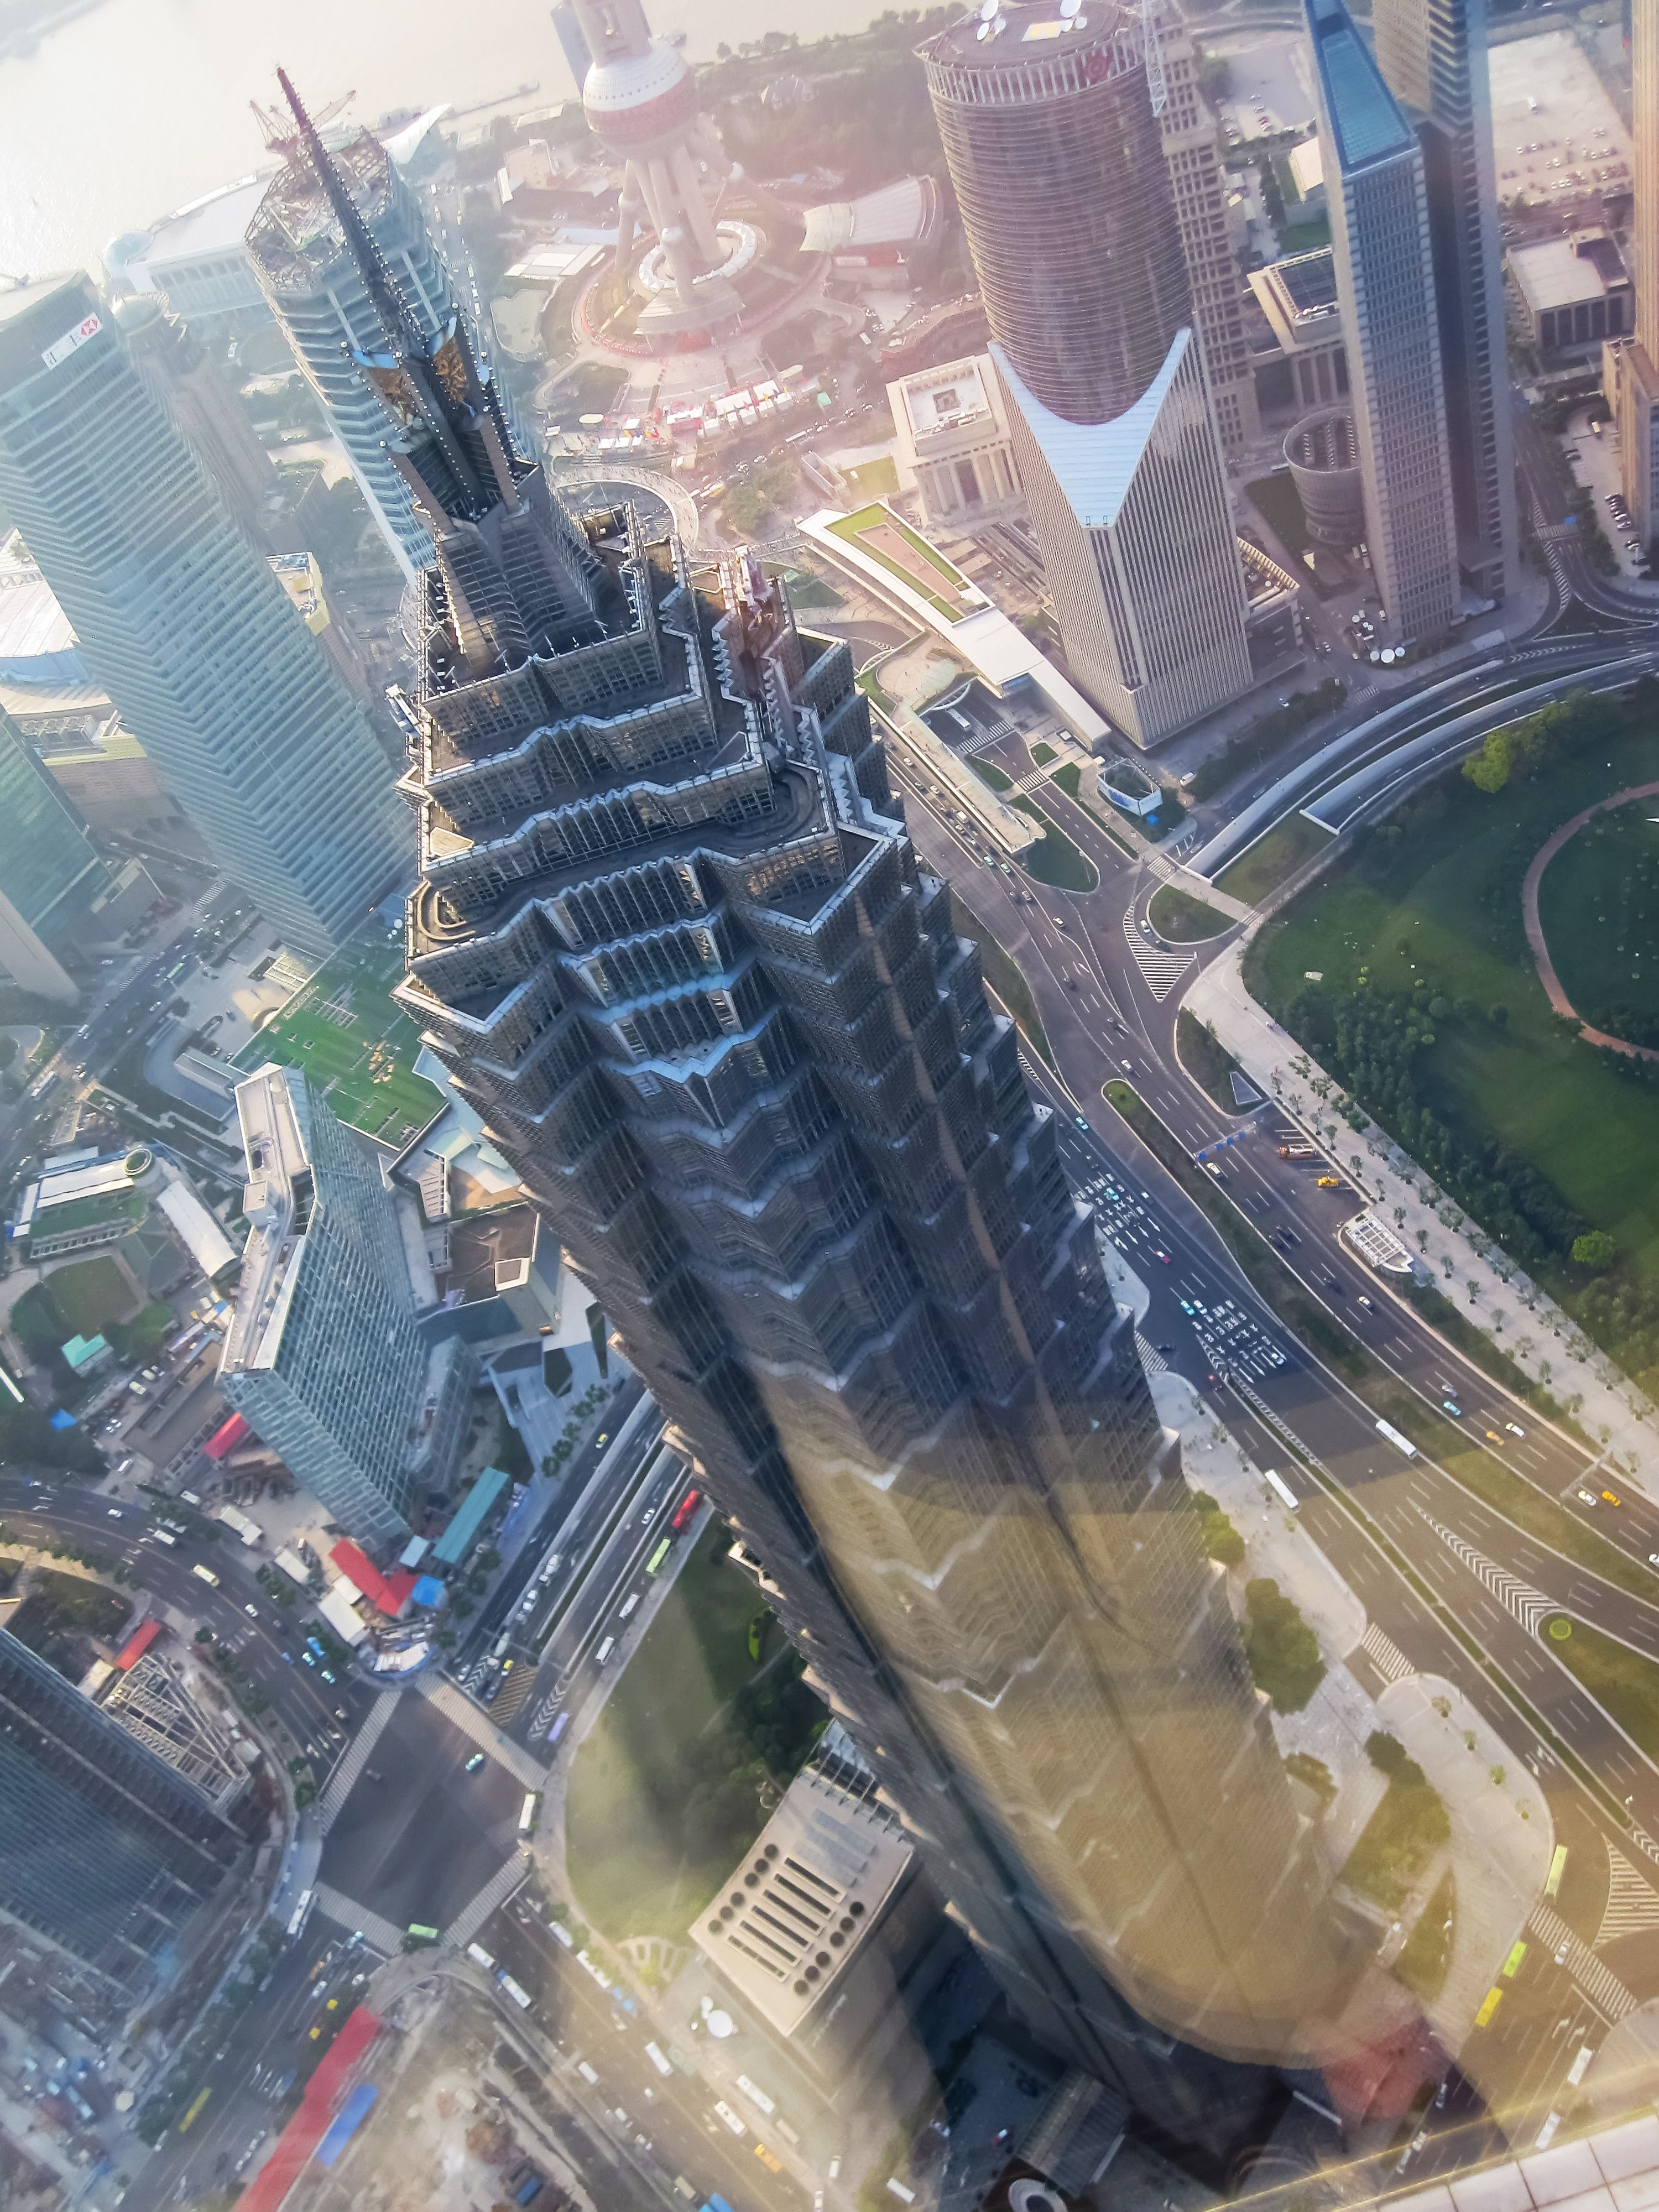 Tallest Buildings in the World 2019 - 30 Largest Buildings